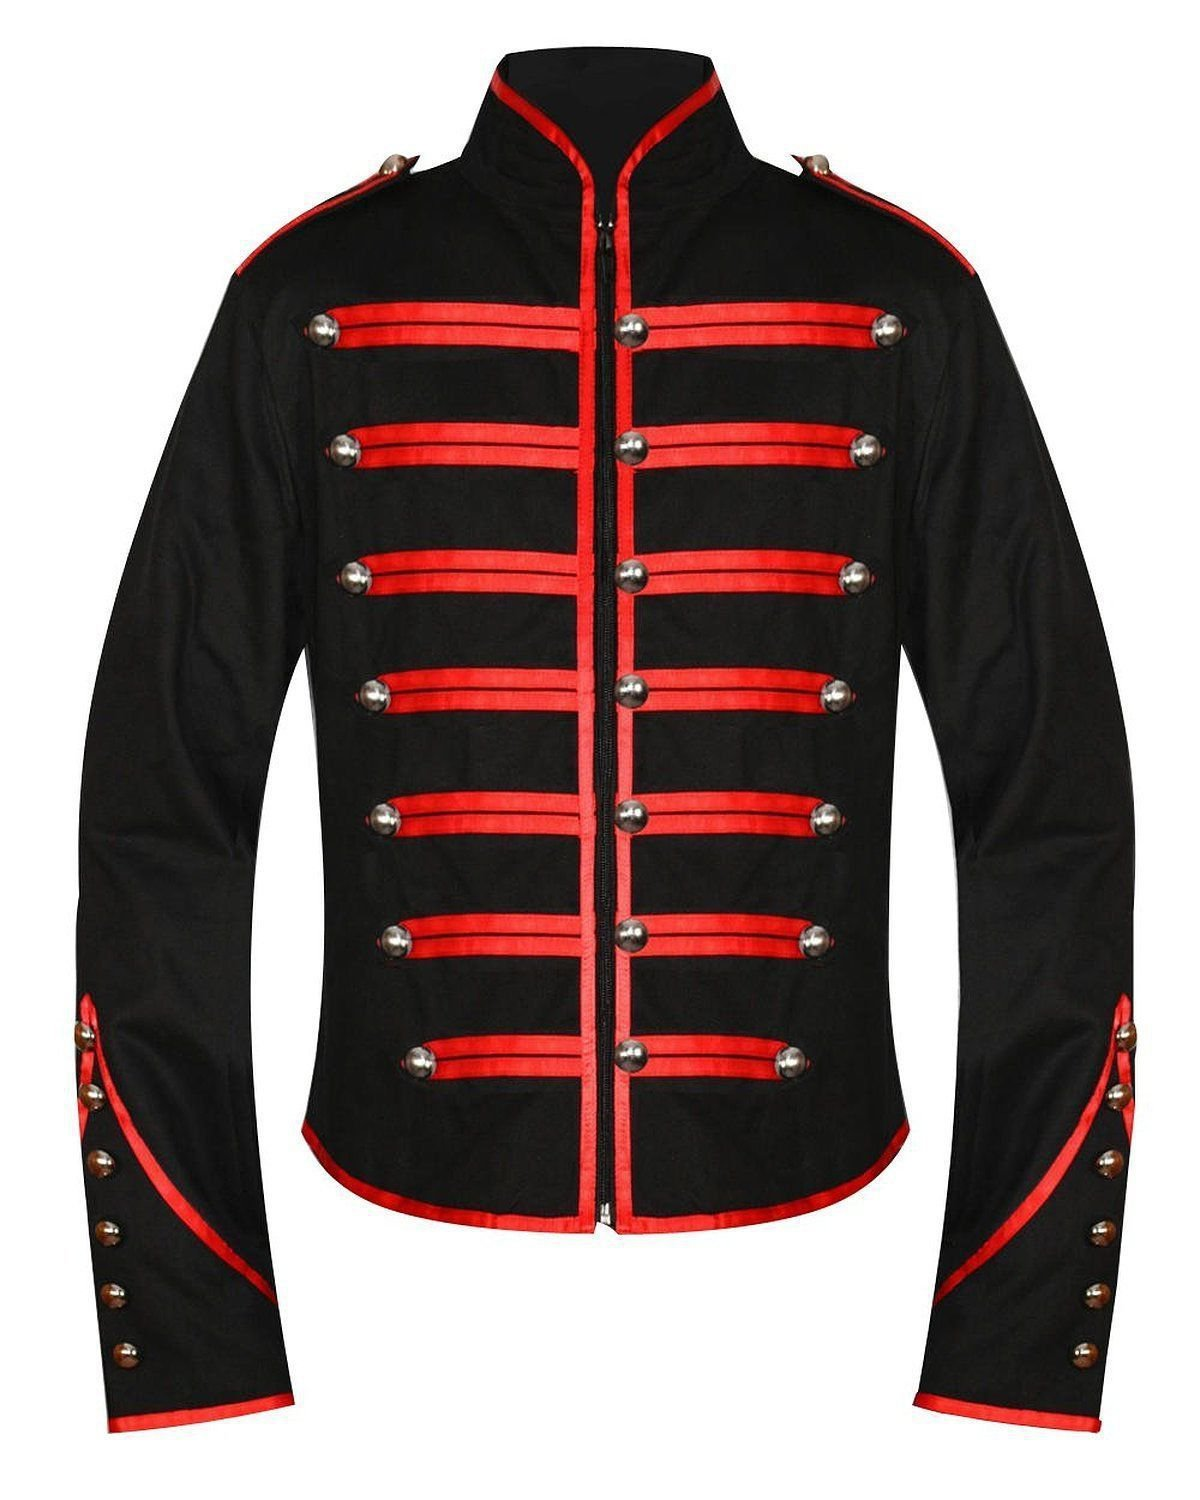 Men Black Parade Military Marching Banned Drummer Jacket